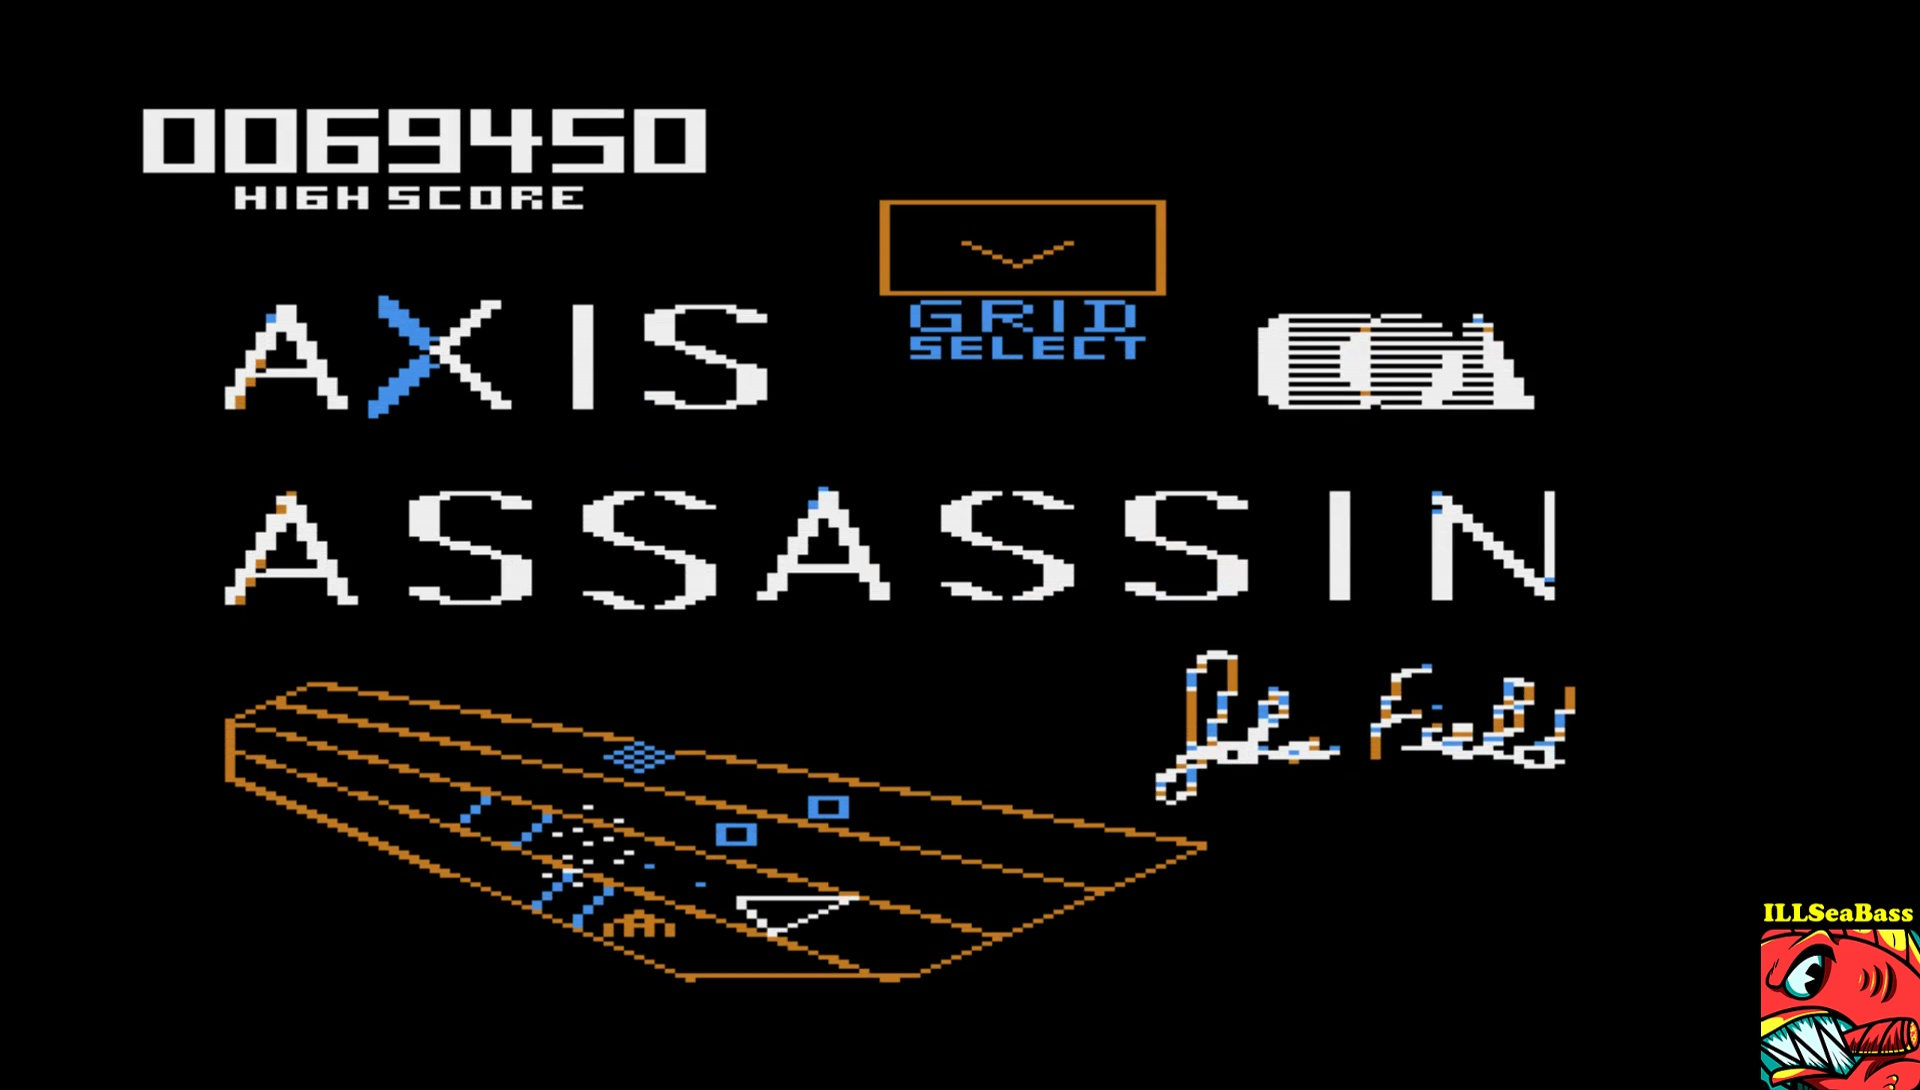 ILLSeaBass: Axis Assassin: Medium Spider (Atari 400/800/XL/XE Emulated) 69,450 points on 2017-06-11 00:26:19